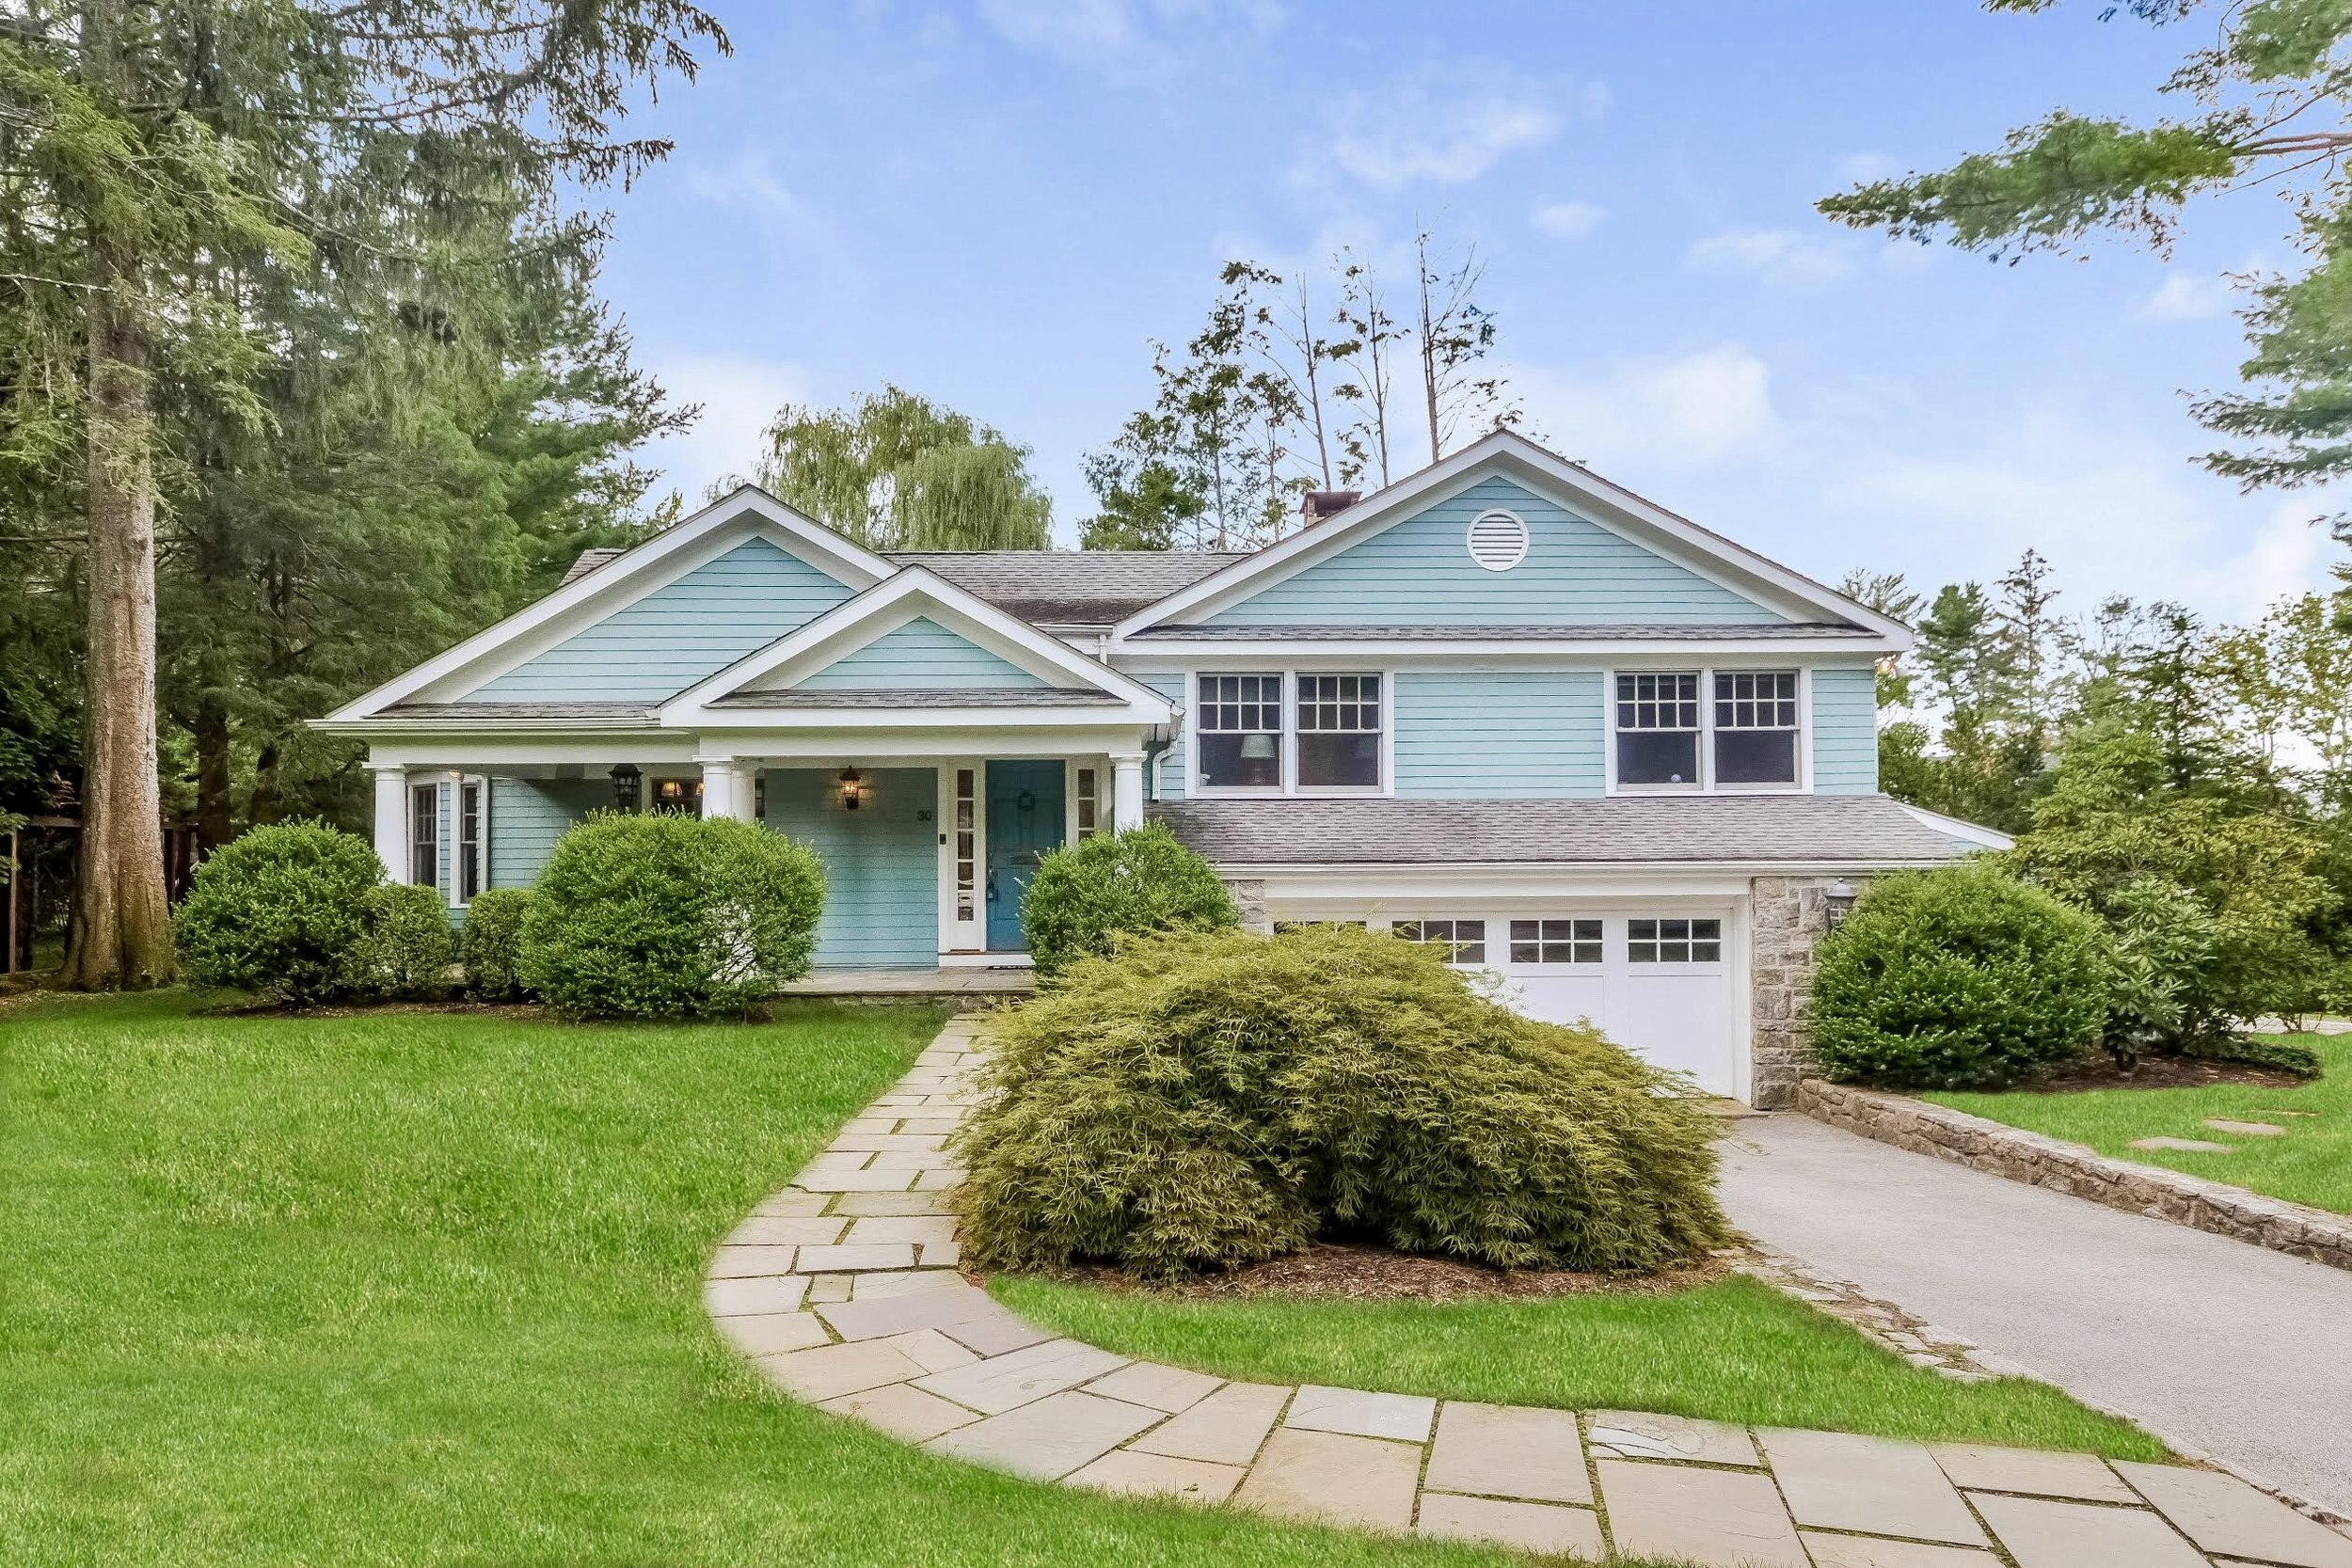 SOLD  30 Fairview Road Scarsdale, NY Represented the Buyer